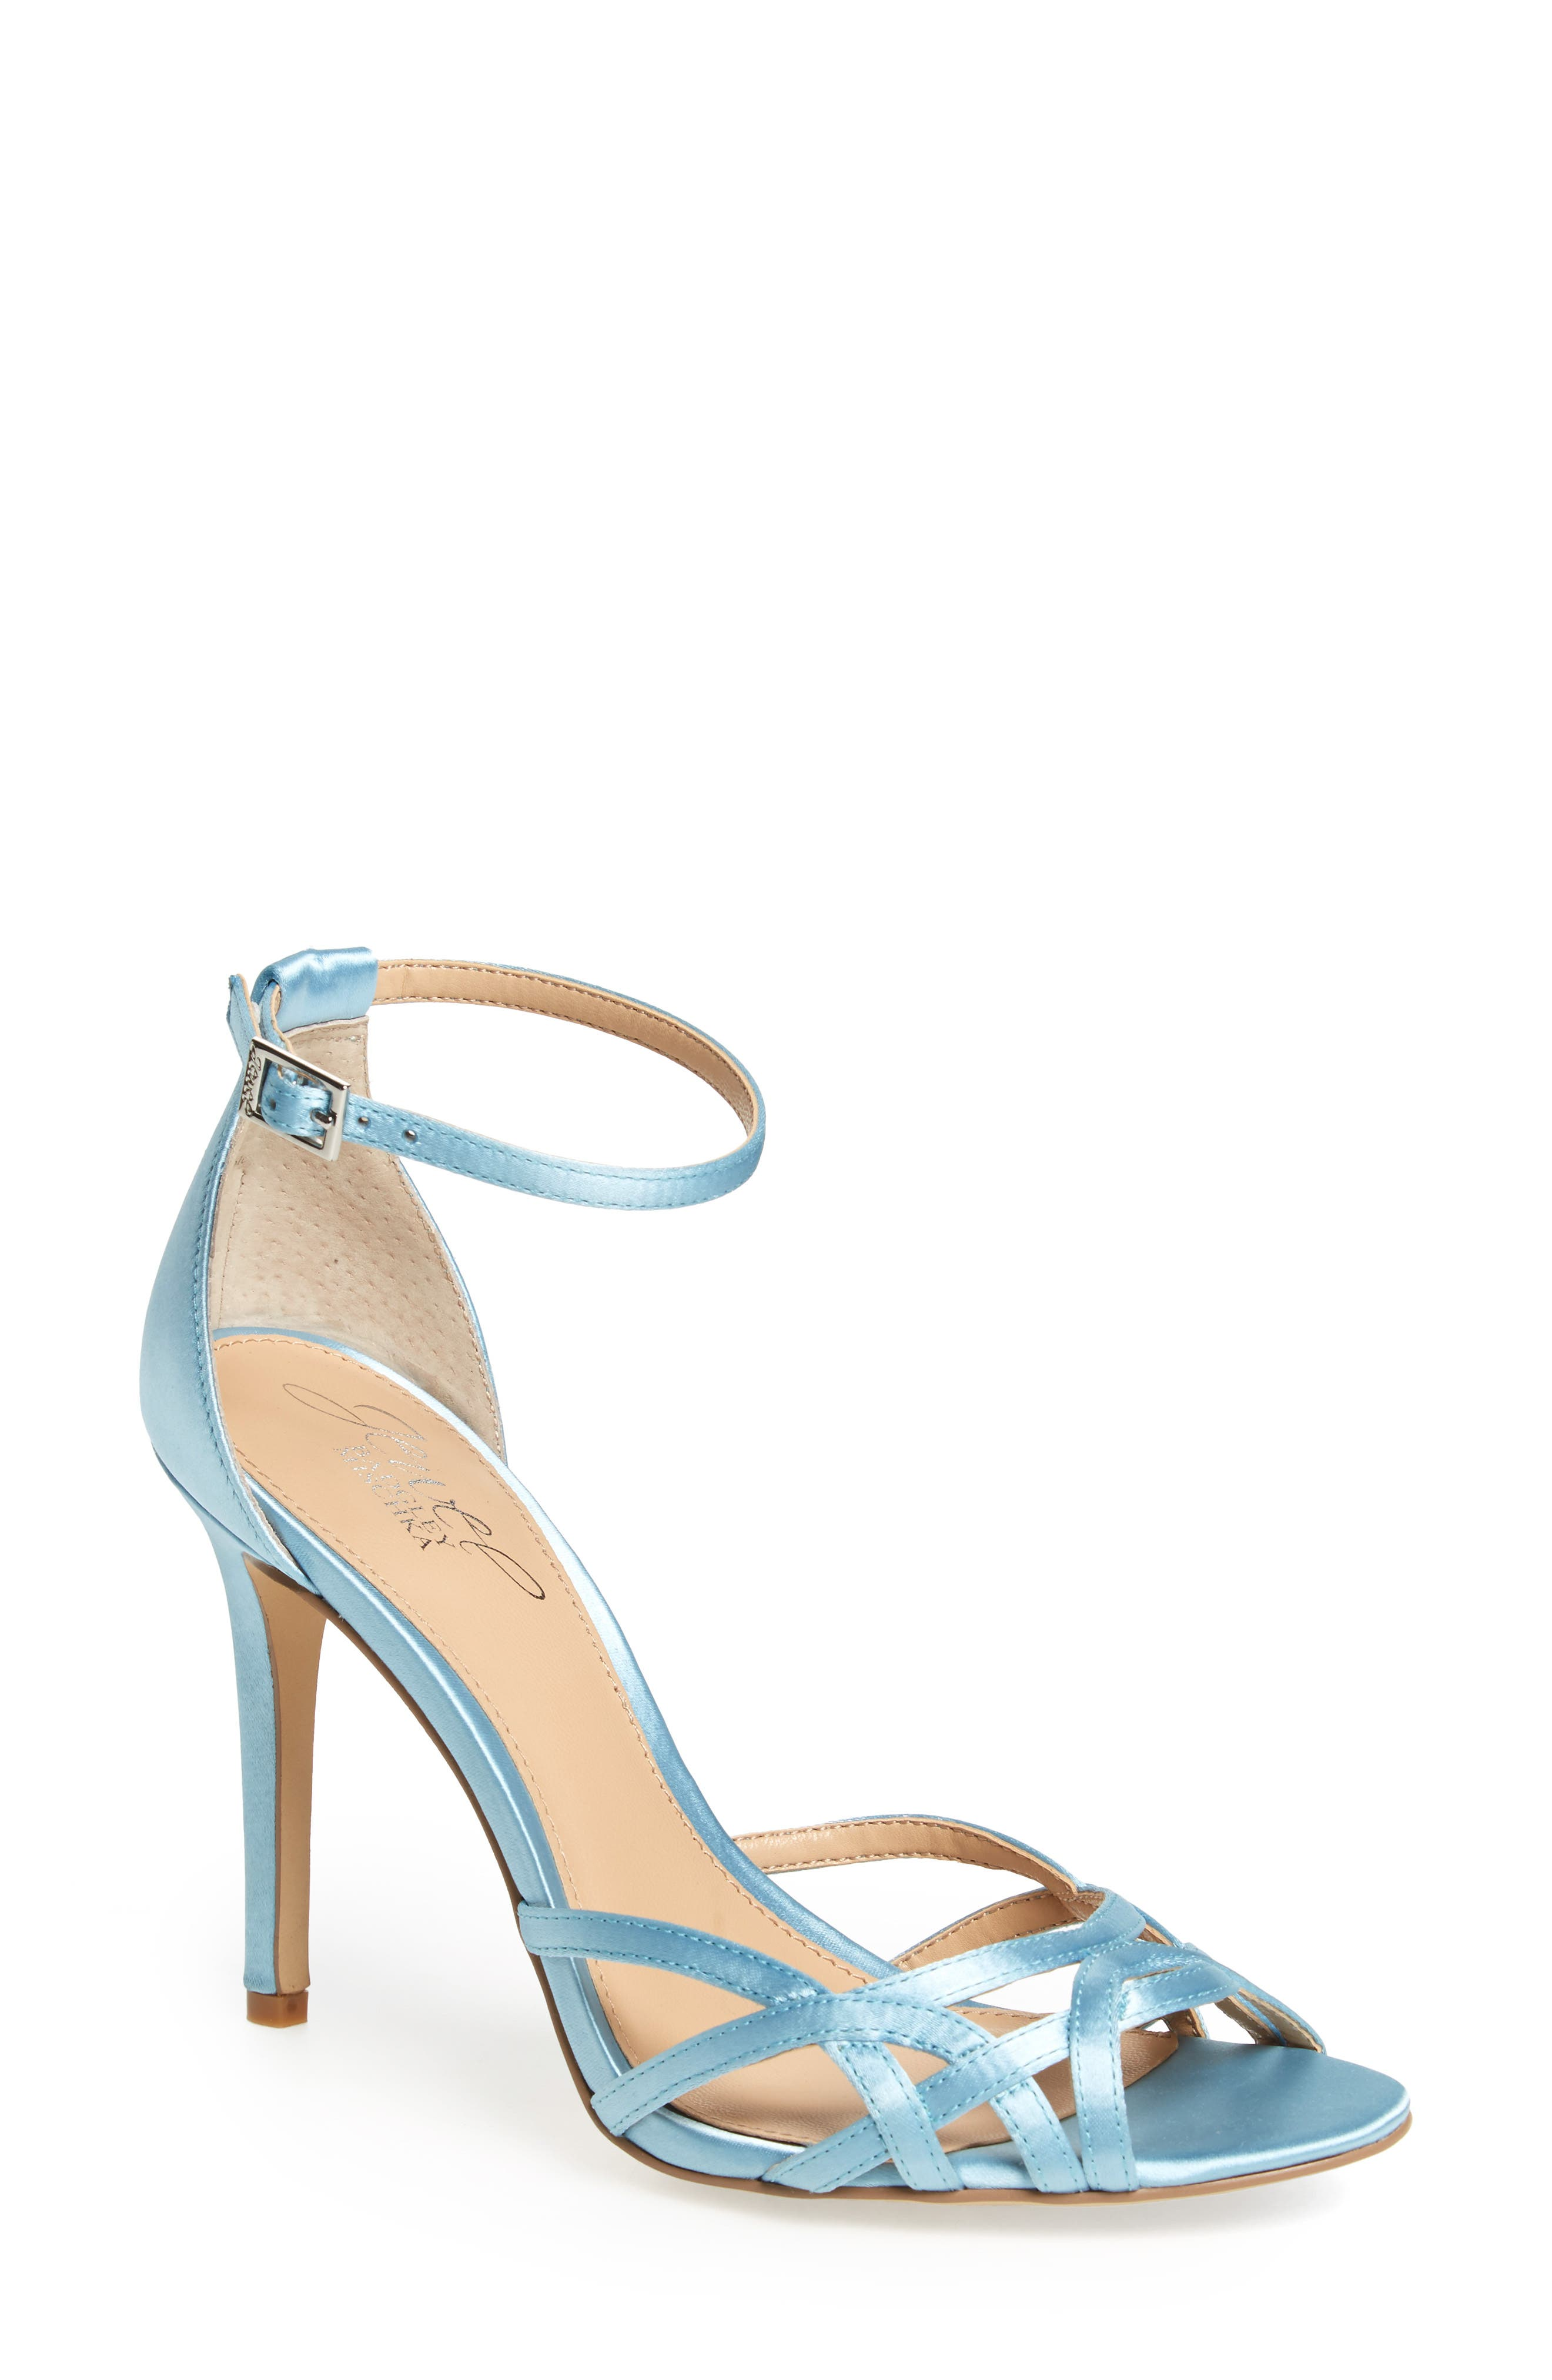 Alternate Image 1 Selected - Jewel Badgley Mischka Haskell II Strappy Sandal (Women)